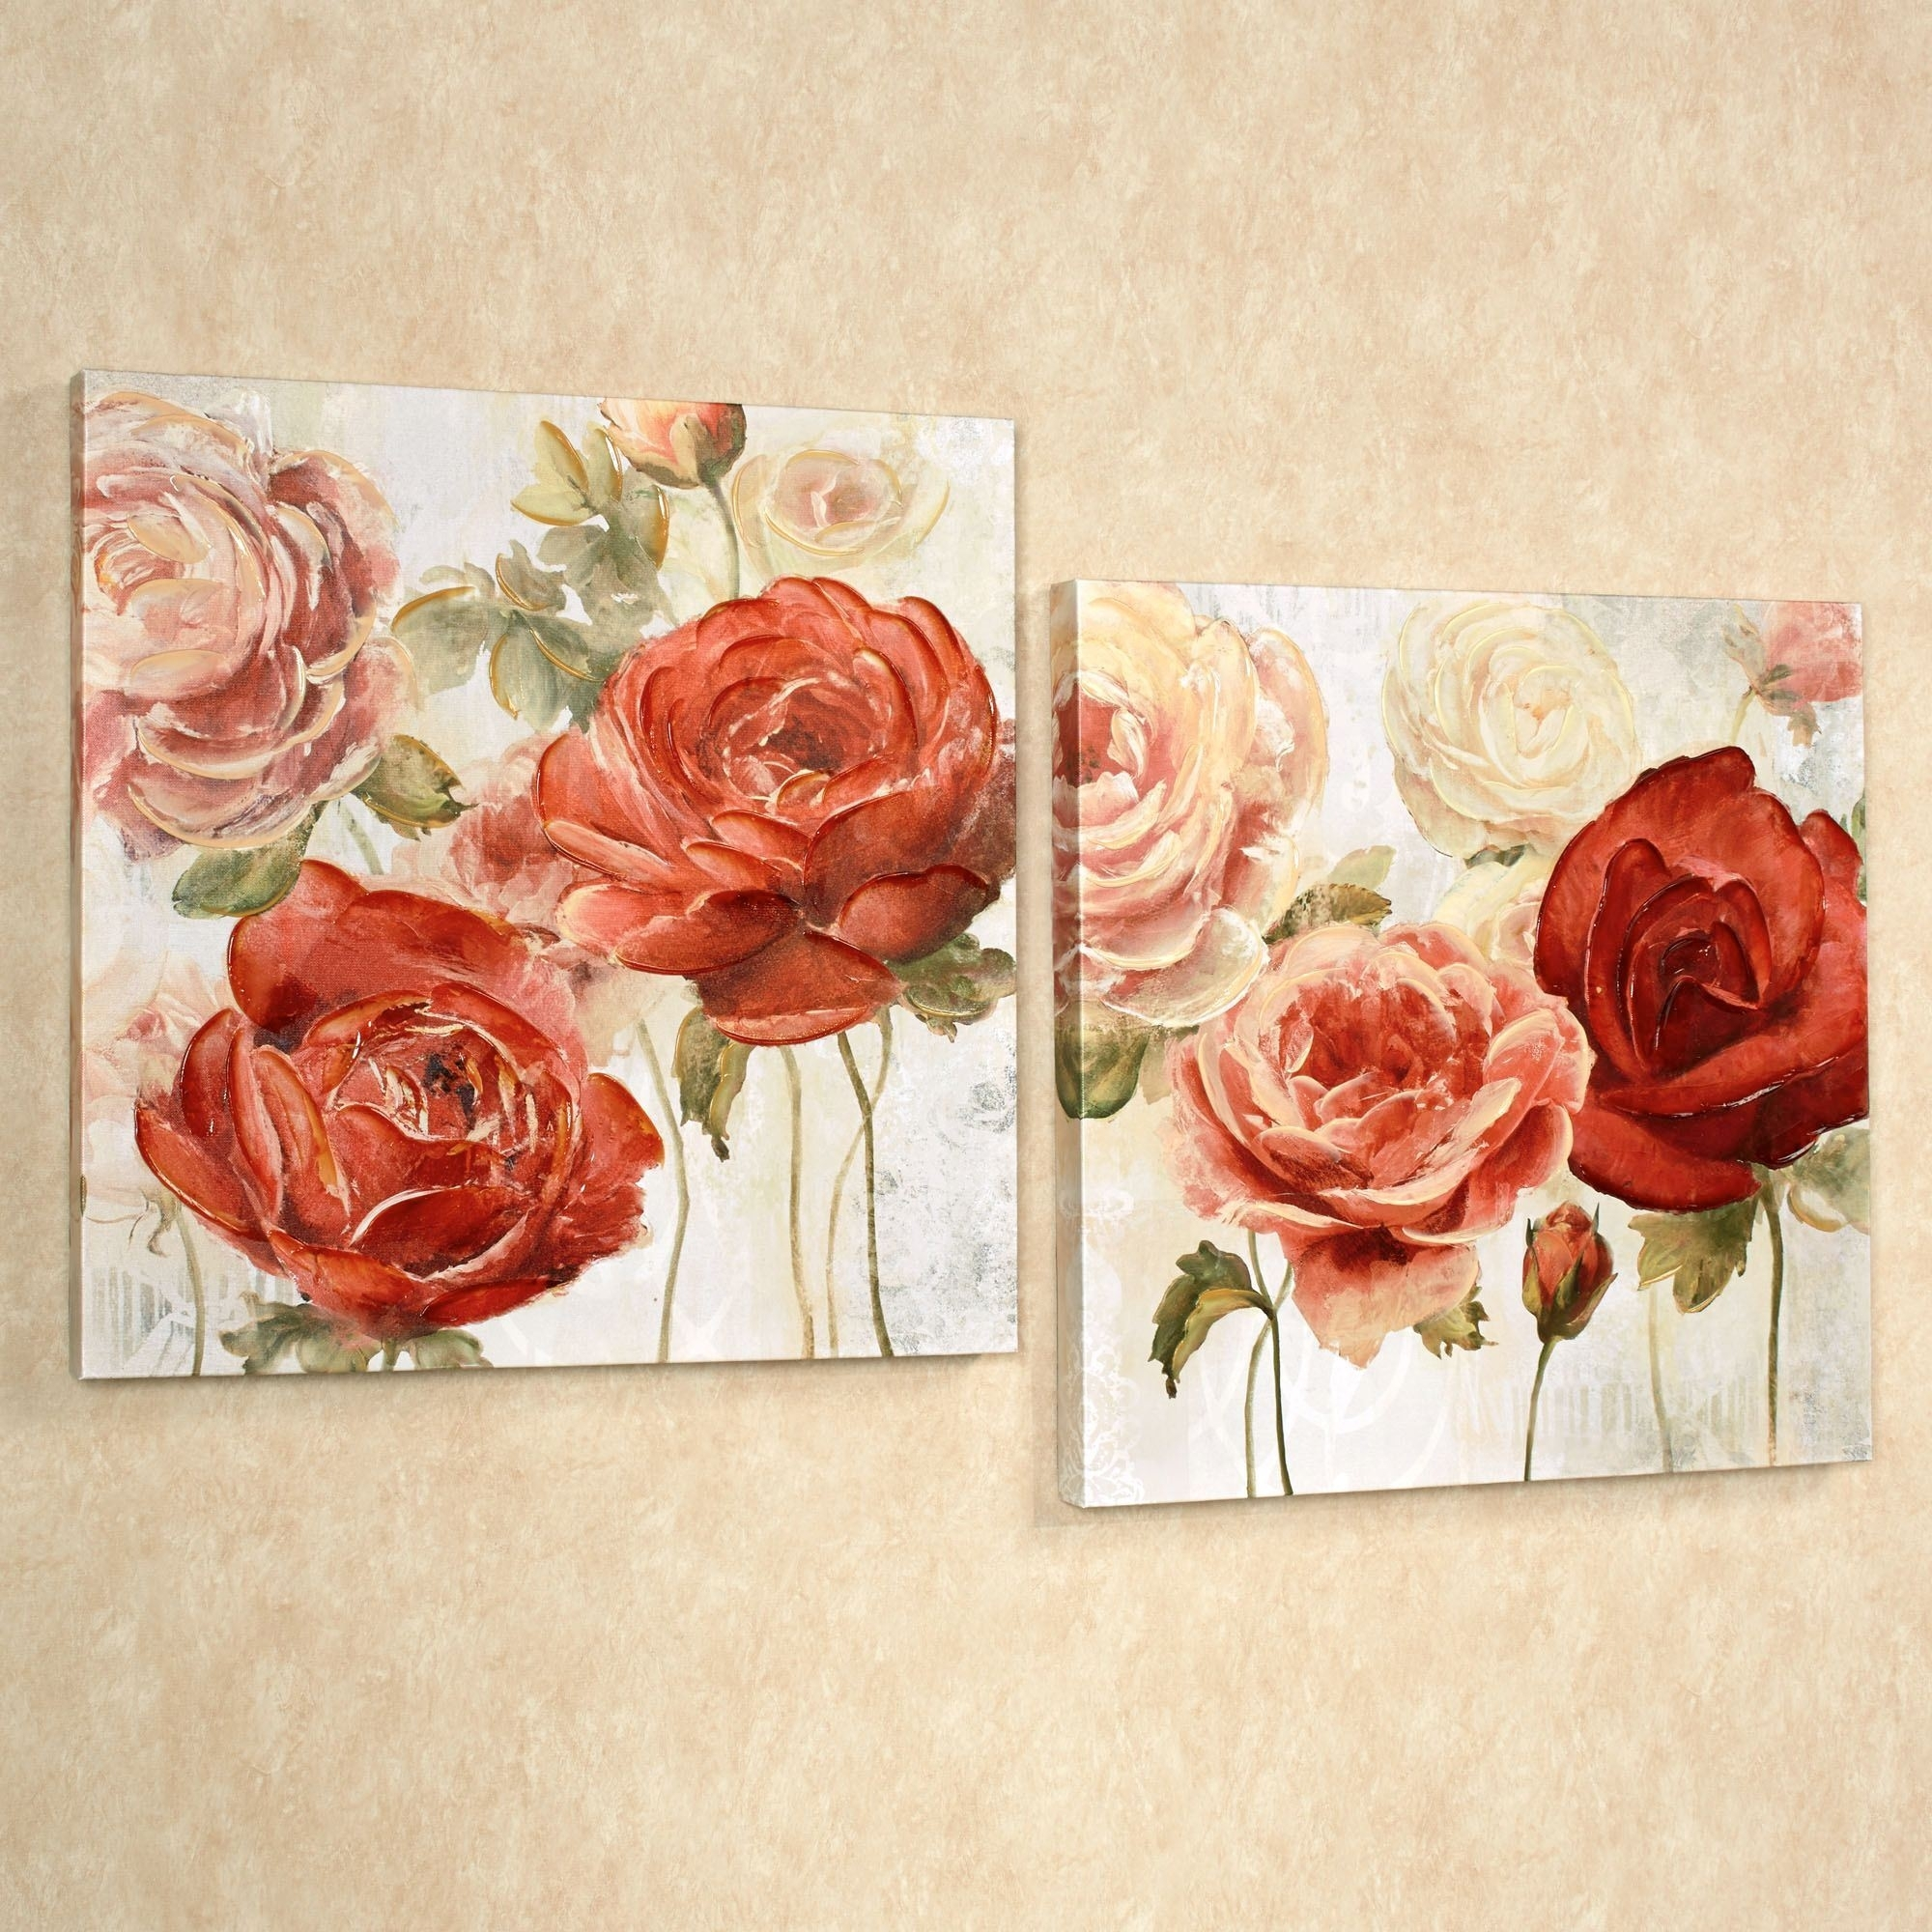 Radiant Blooms Rose Floral Canvas Wall Art Set Inside Most Recently Released Roses Canvas Wall Art (View 10 of 15)